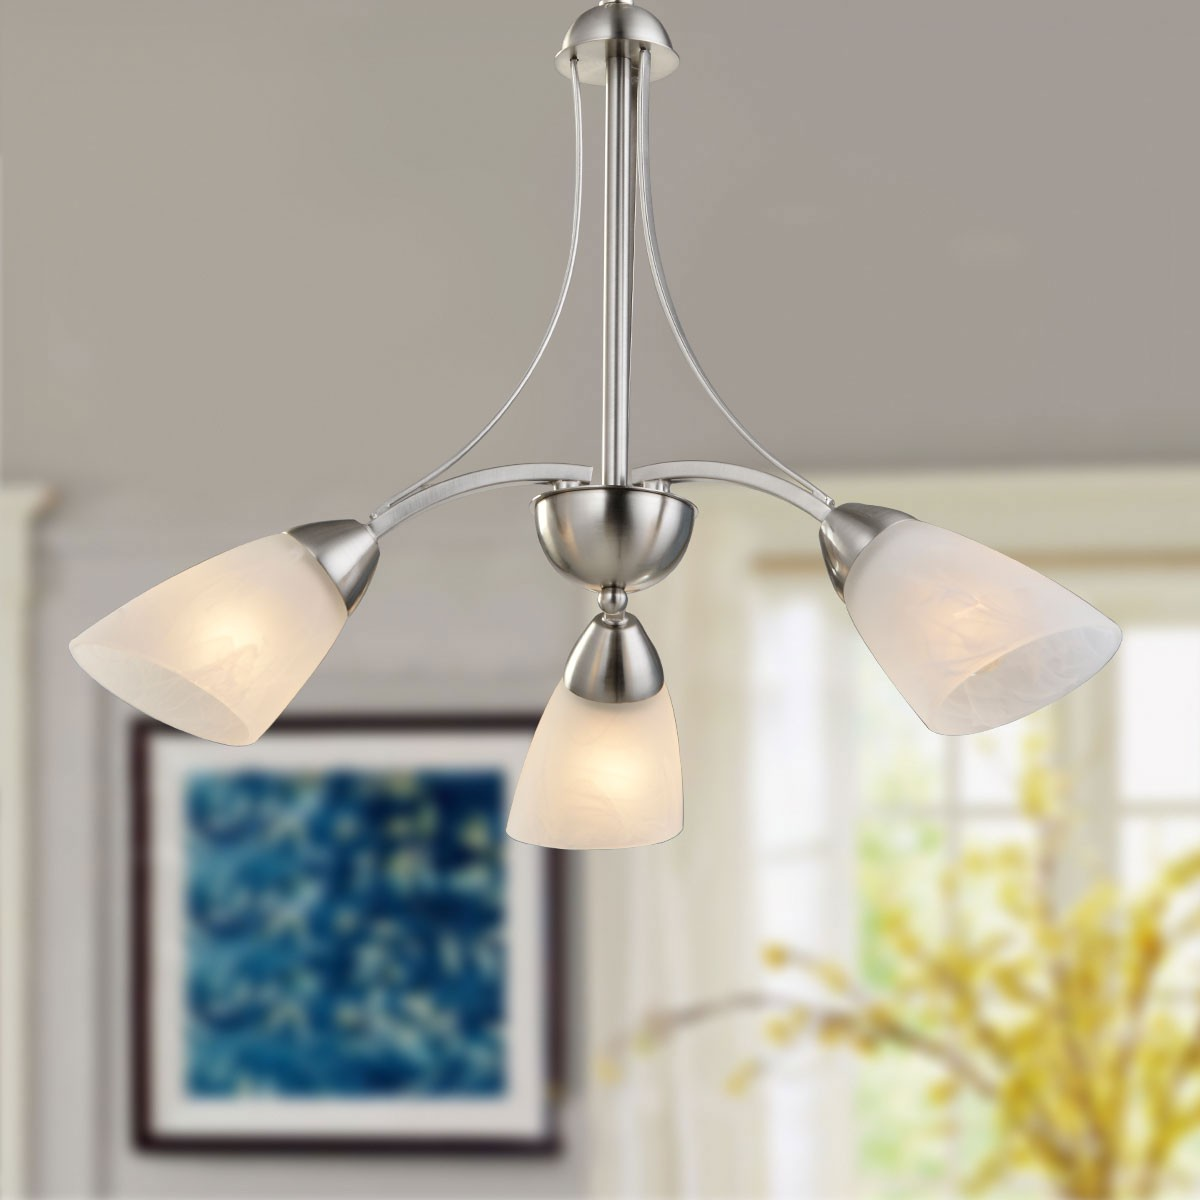 3-Light Silver Iron Modern Chandelier with Glass Shades (HKP31270-3)